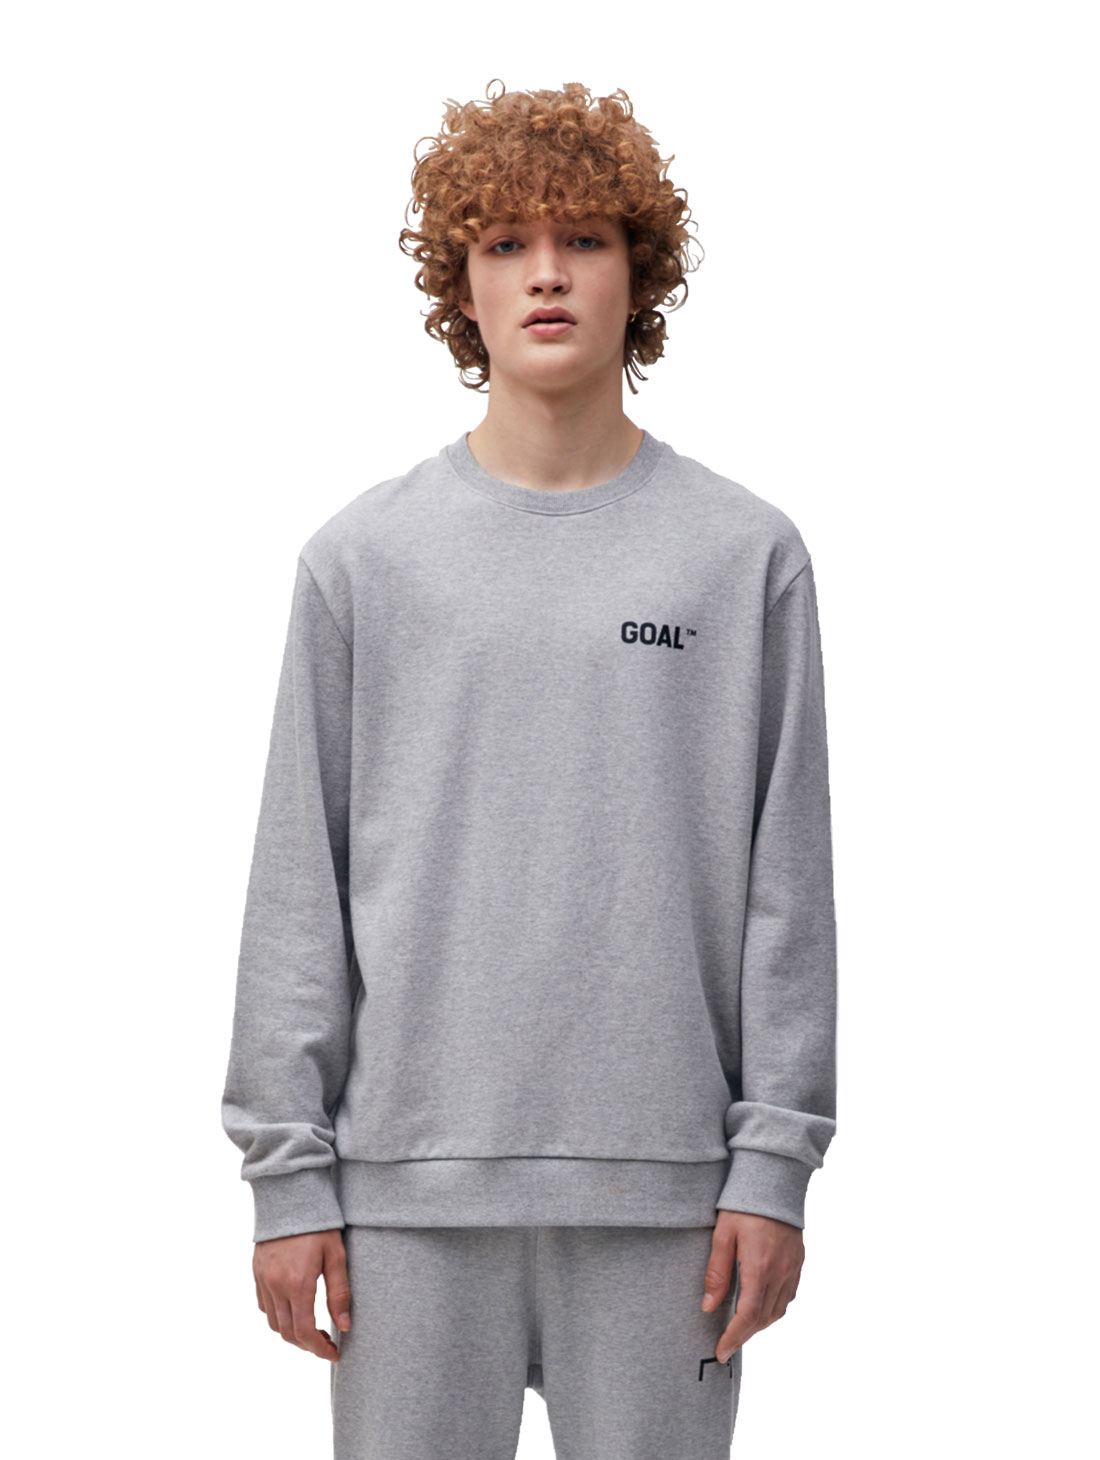 GOALSTUDIO BACK LOGO SWEATSHIRT - GREY